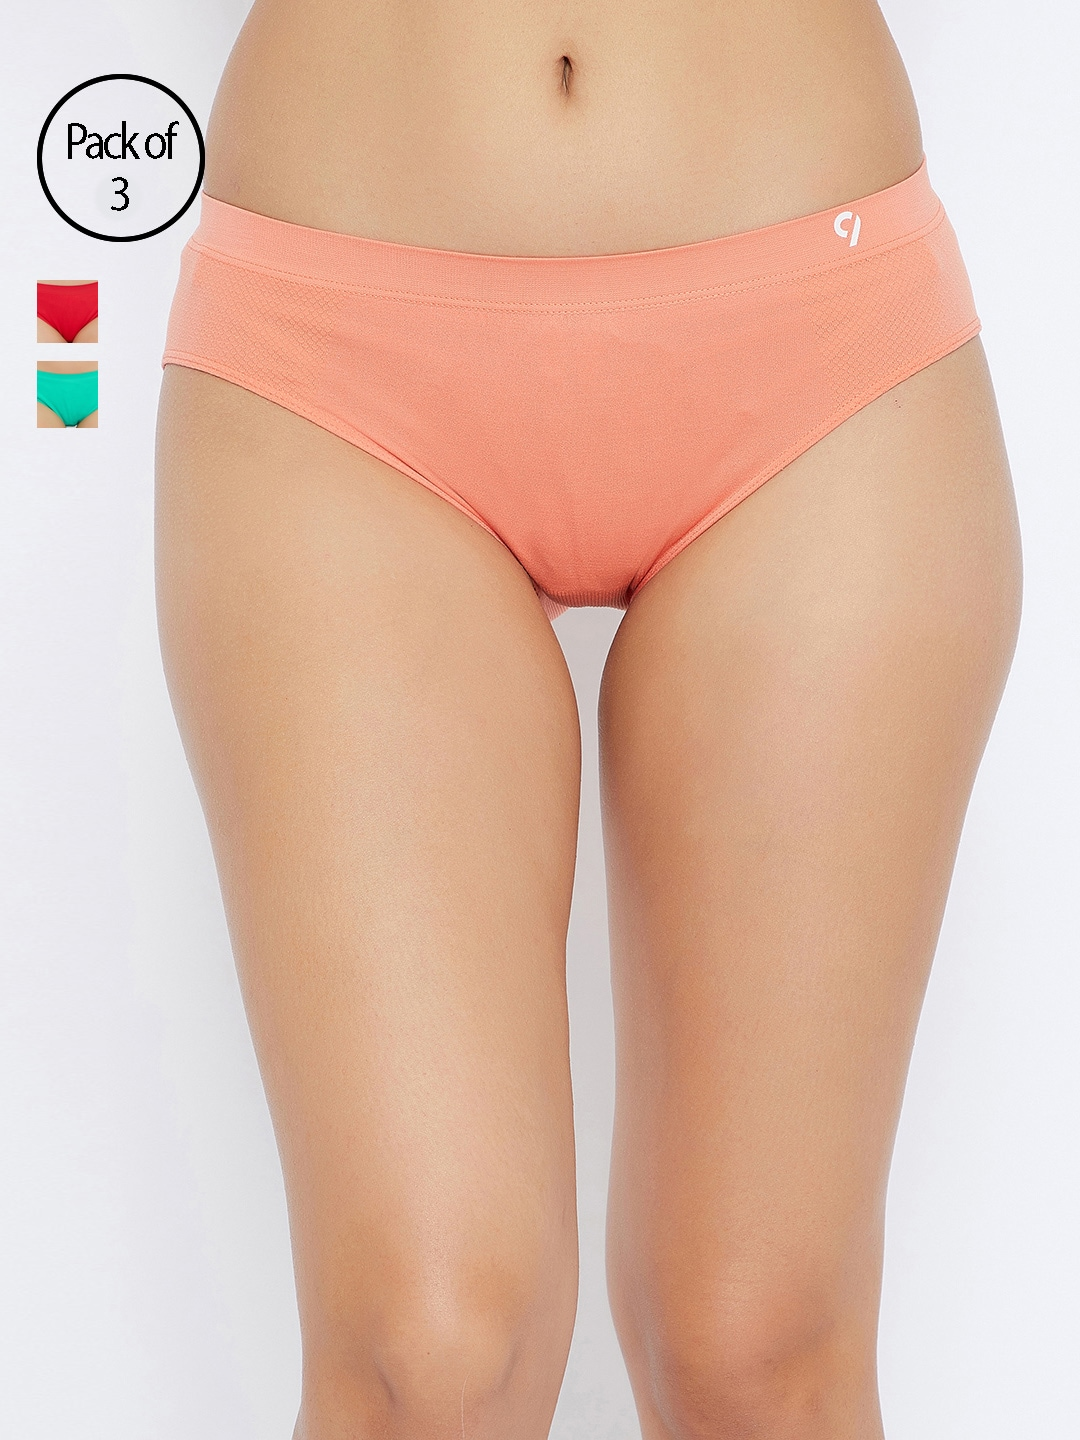 a2e776a1817 Panties - Buy Underwear   Panties for Women Online in India - Myntra